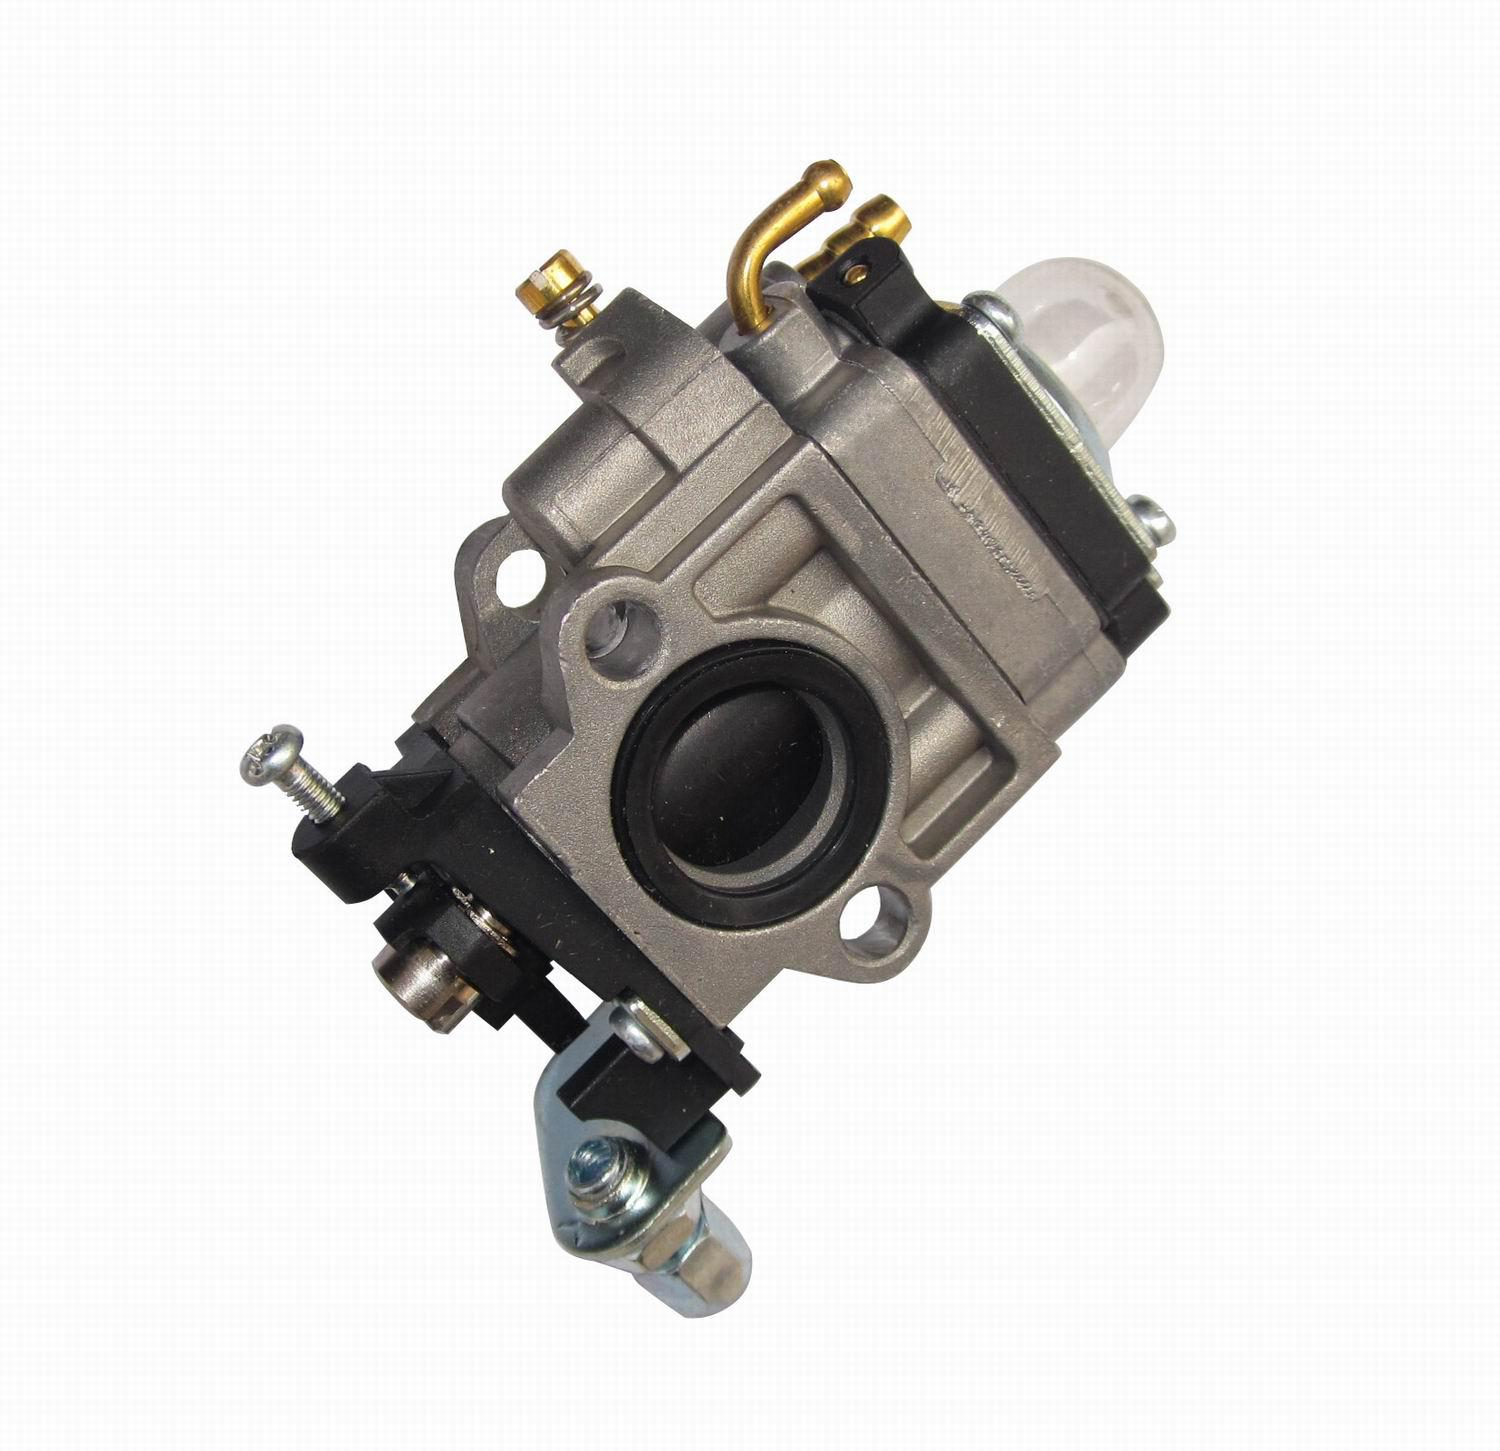 2019 2 Stroke Carburetor 43cc 47cc 49cc 50cc Mini Pocket